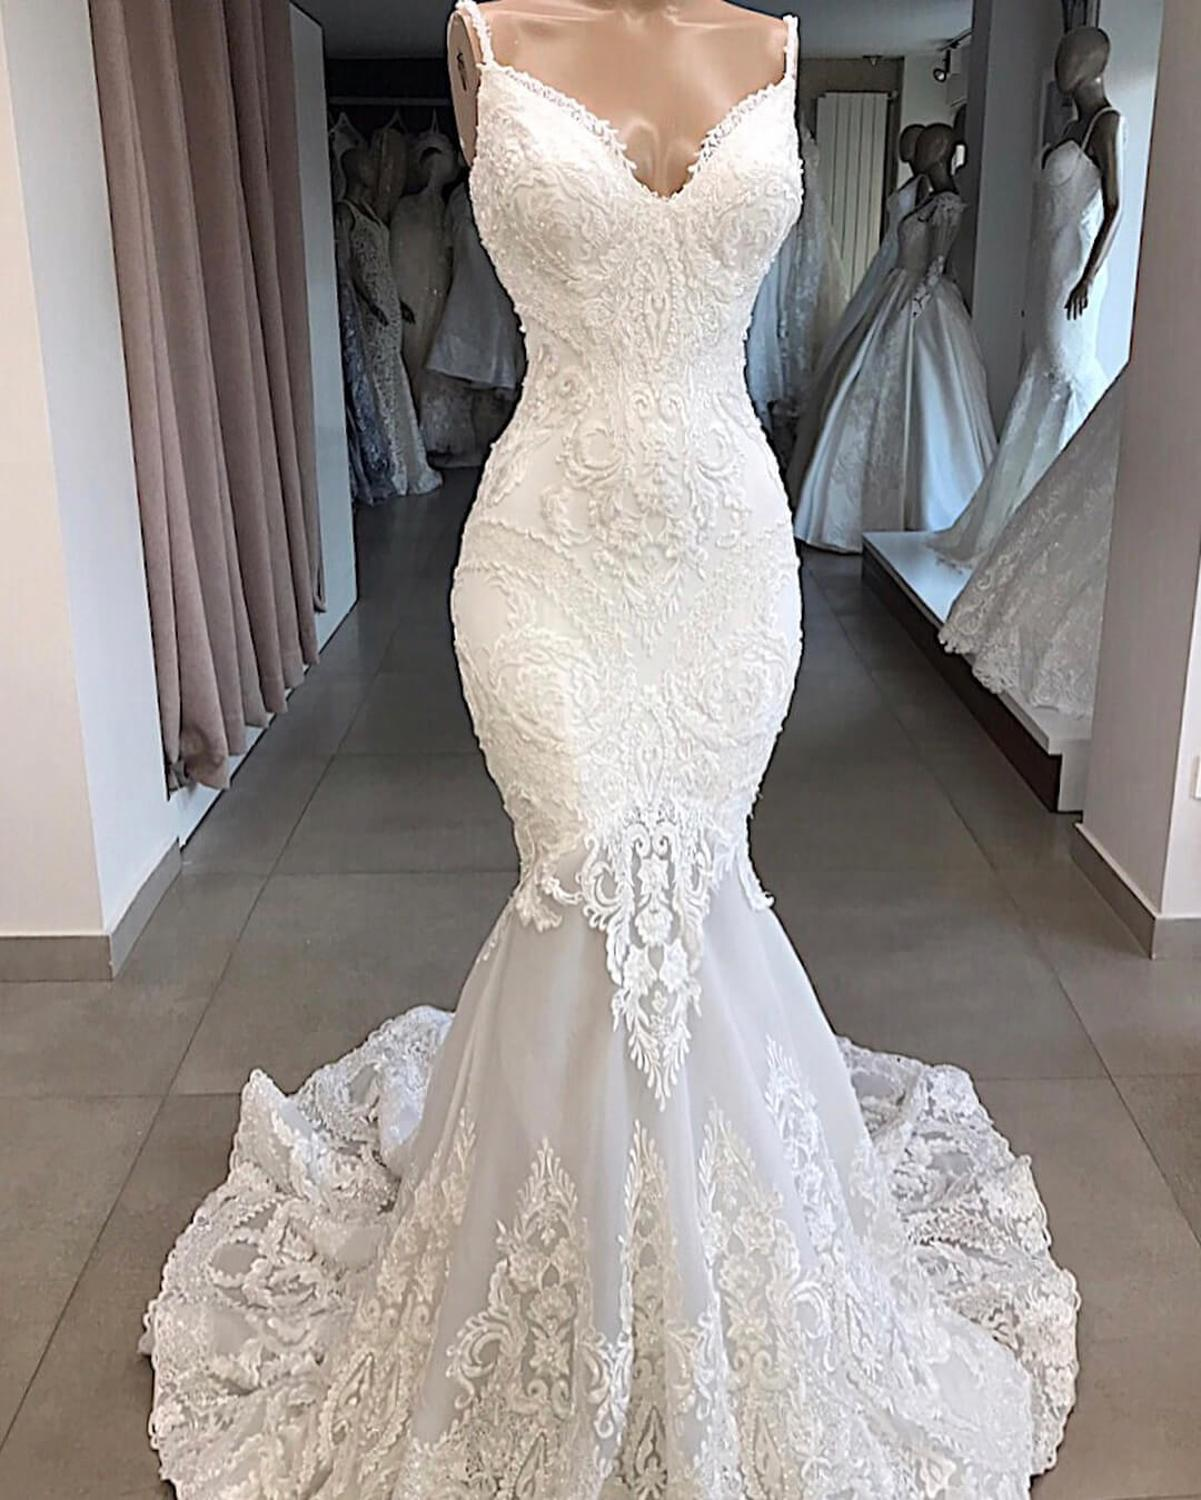 Vestidos De Novia White Mermaid Wedding Dress Backless Sexy V-Neck Lace Wedding Gowns Handmade Appluques Bridal Dress Gelinlik